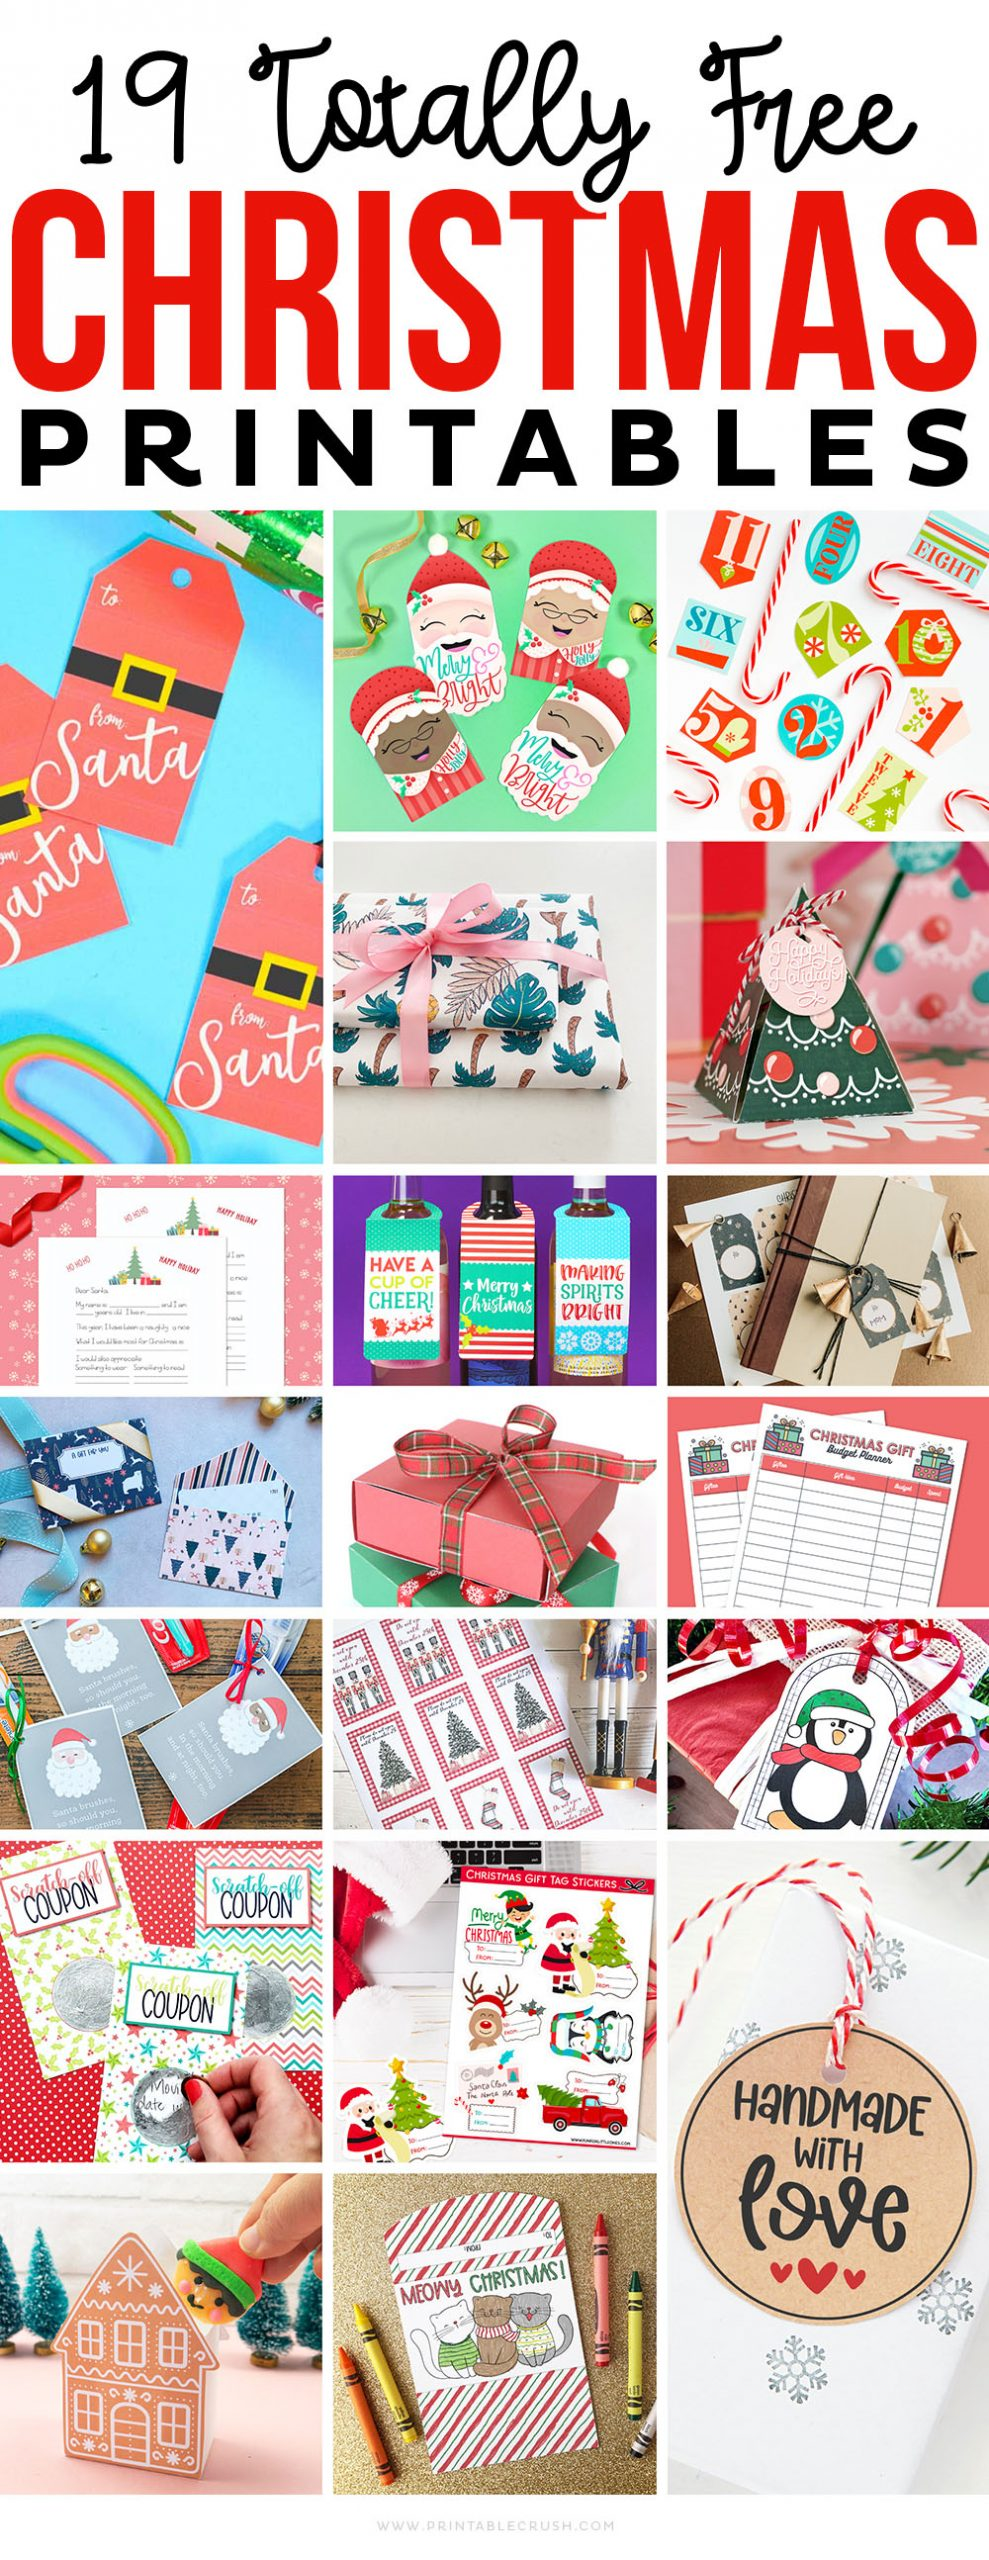 19 Free Christmas Gift Printables - Holiday Gift Printables - Free Christmas Printables - Free Holiday Printables Printable Crush